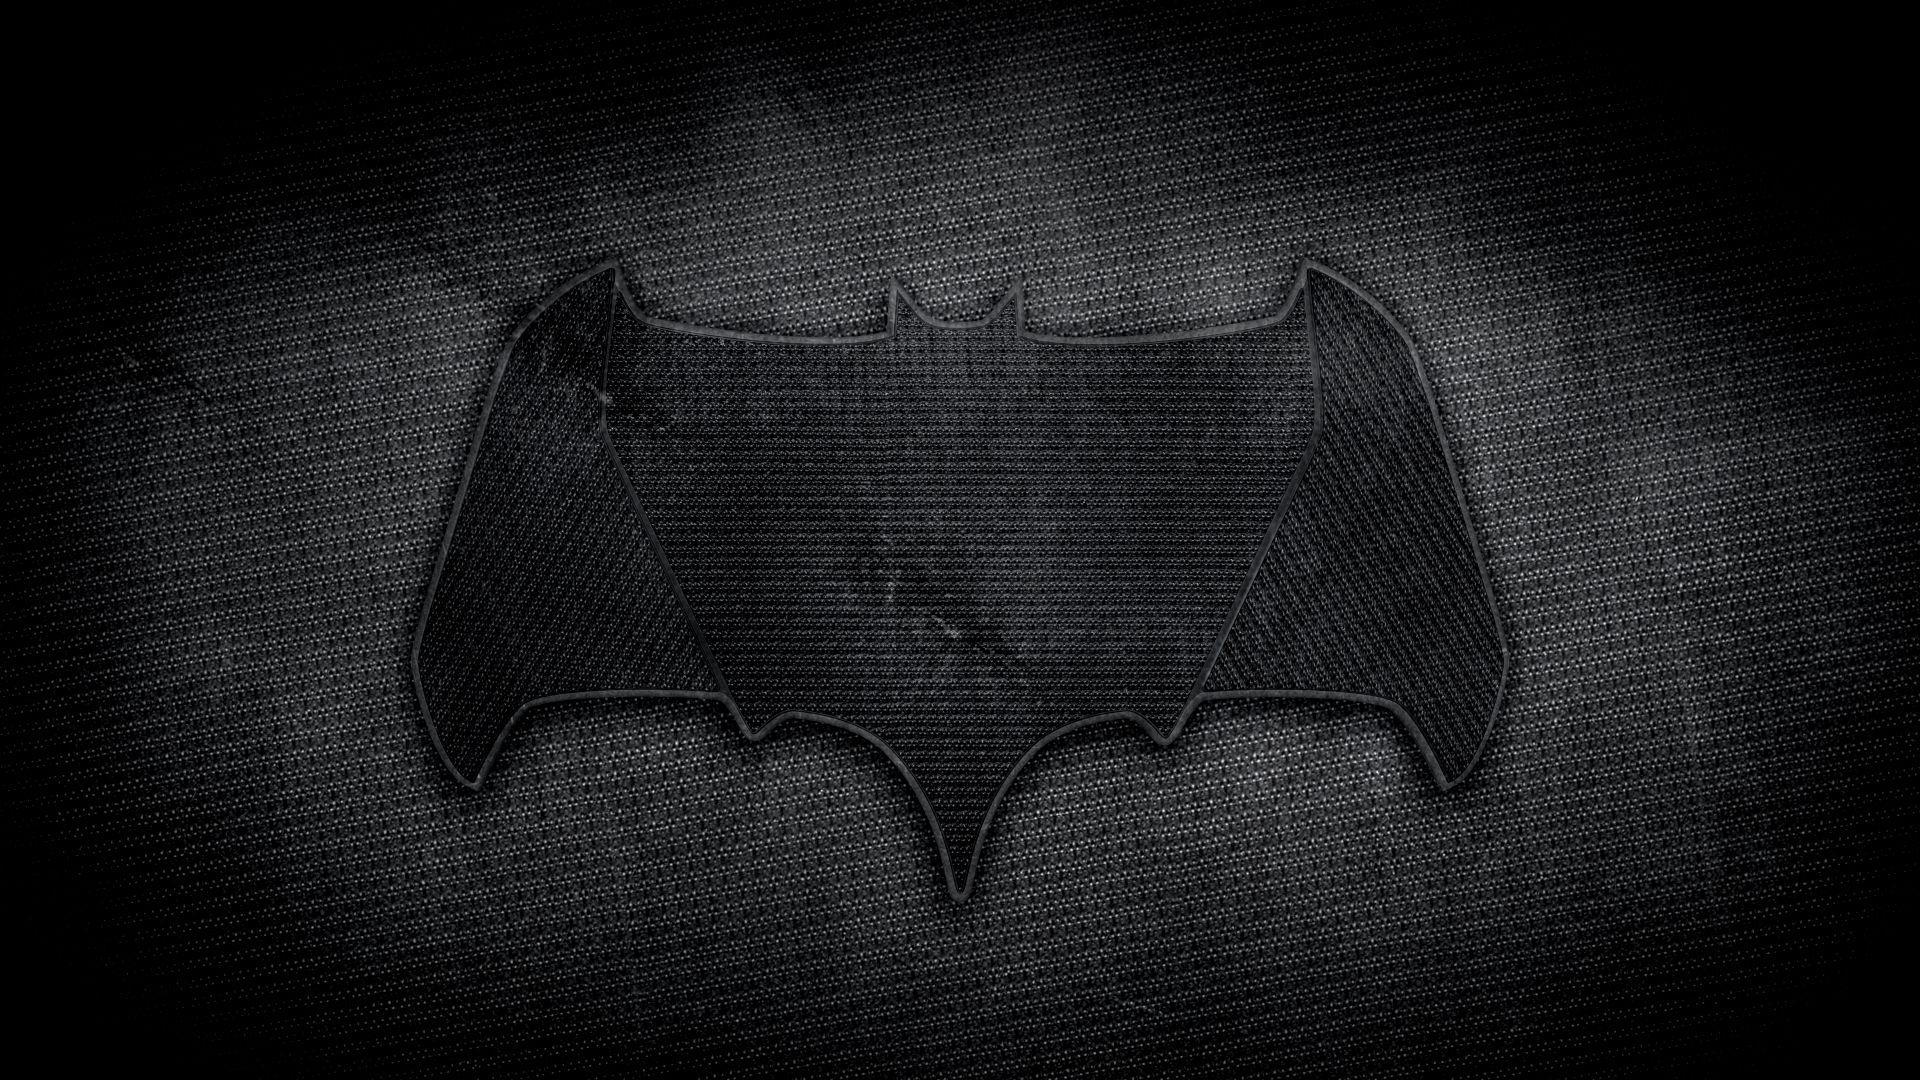 New Batman Symbol